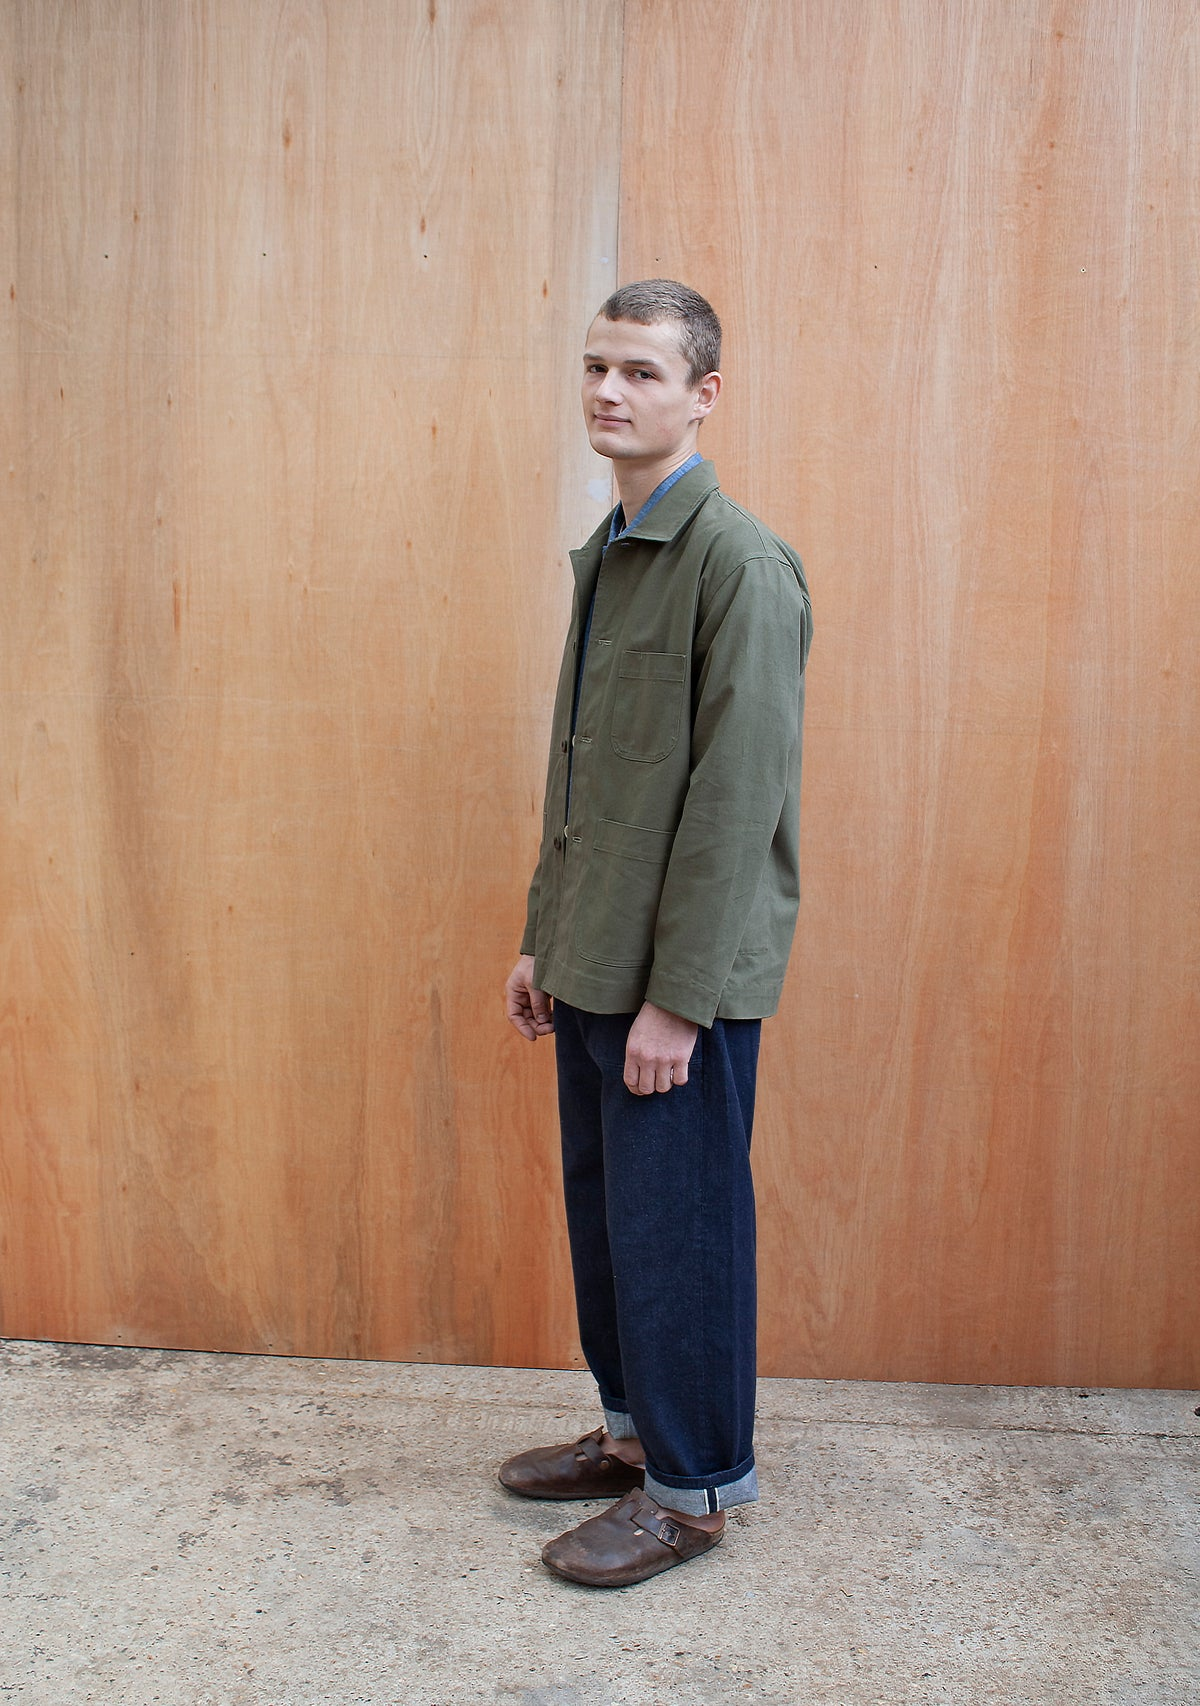 a young man standing against a wooden wall wearing a traditional chore jacket made in a sage green  brushed cotton canvas